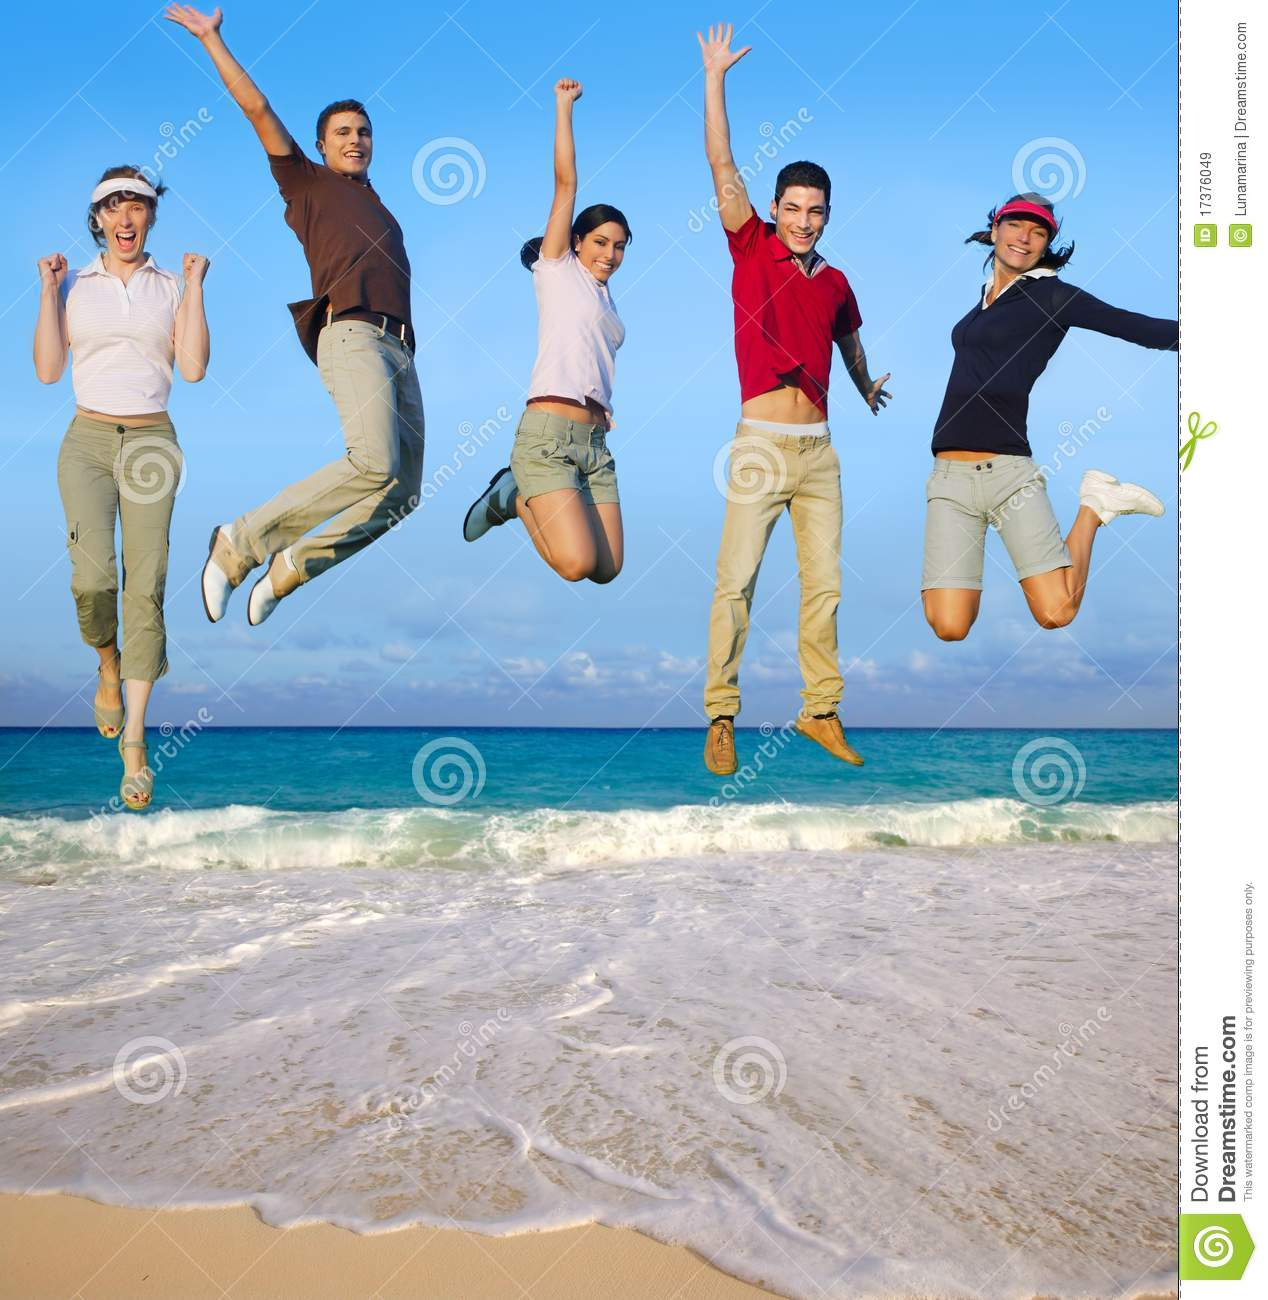 Jumping Young People Happy Group Tropical Beach Stock